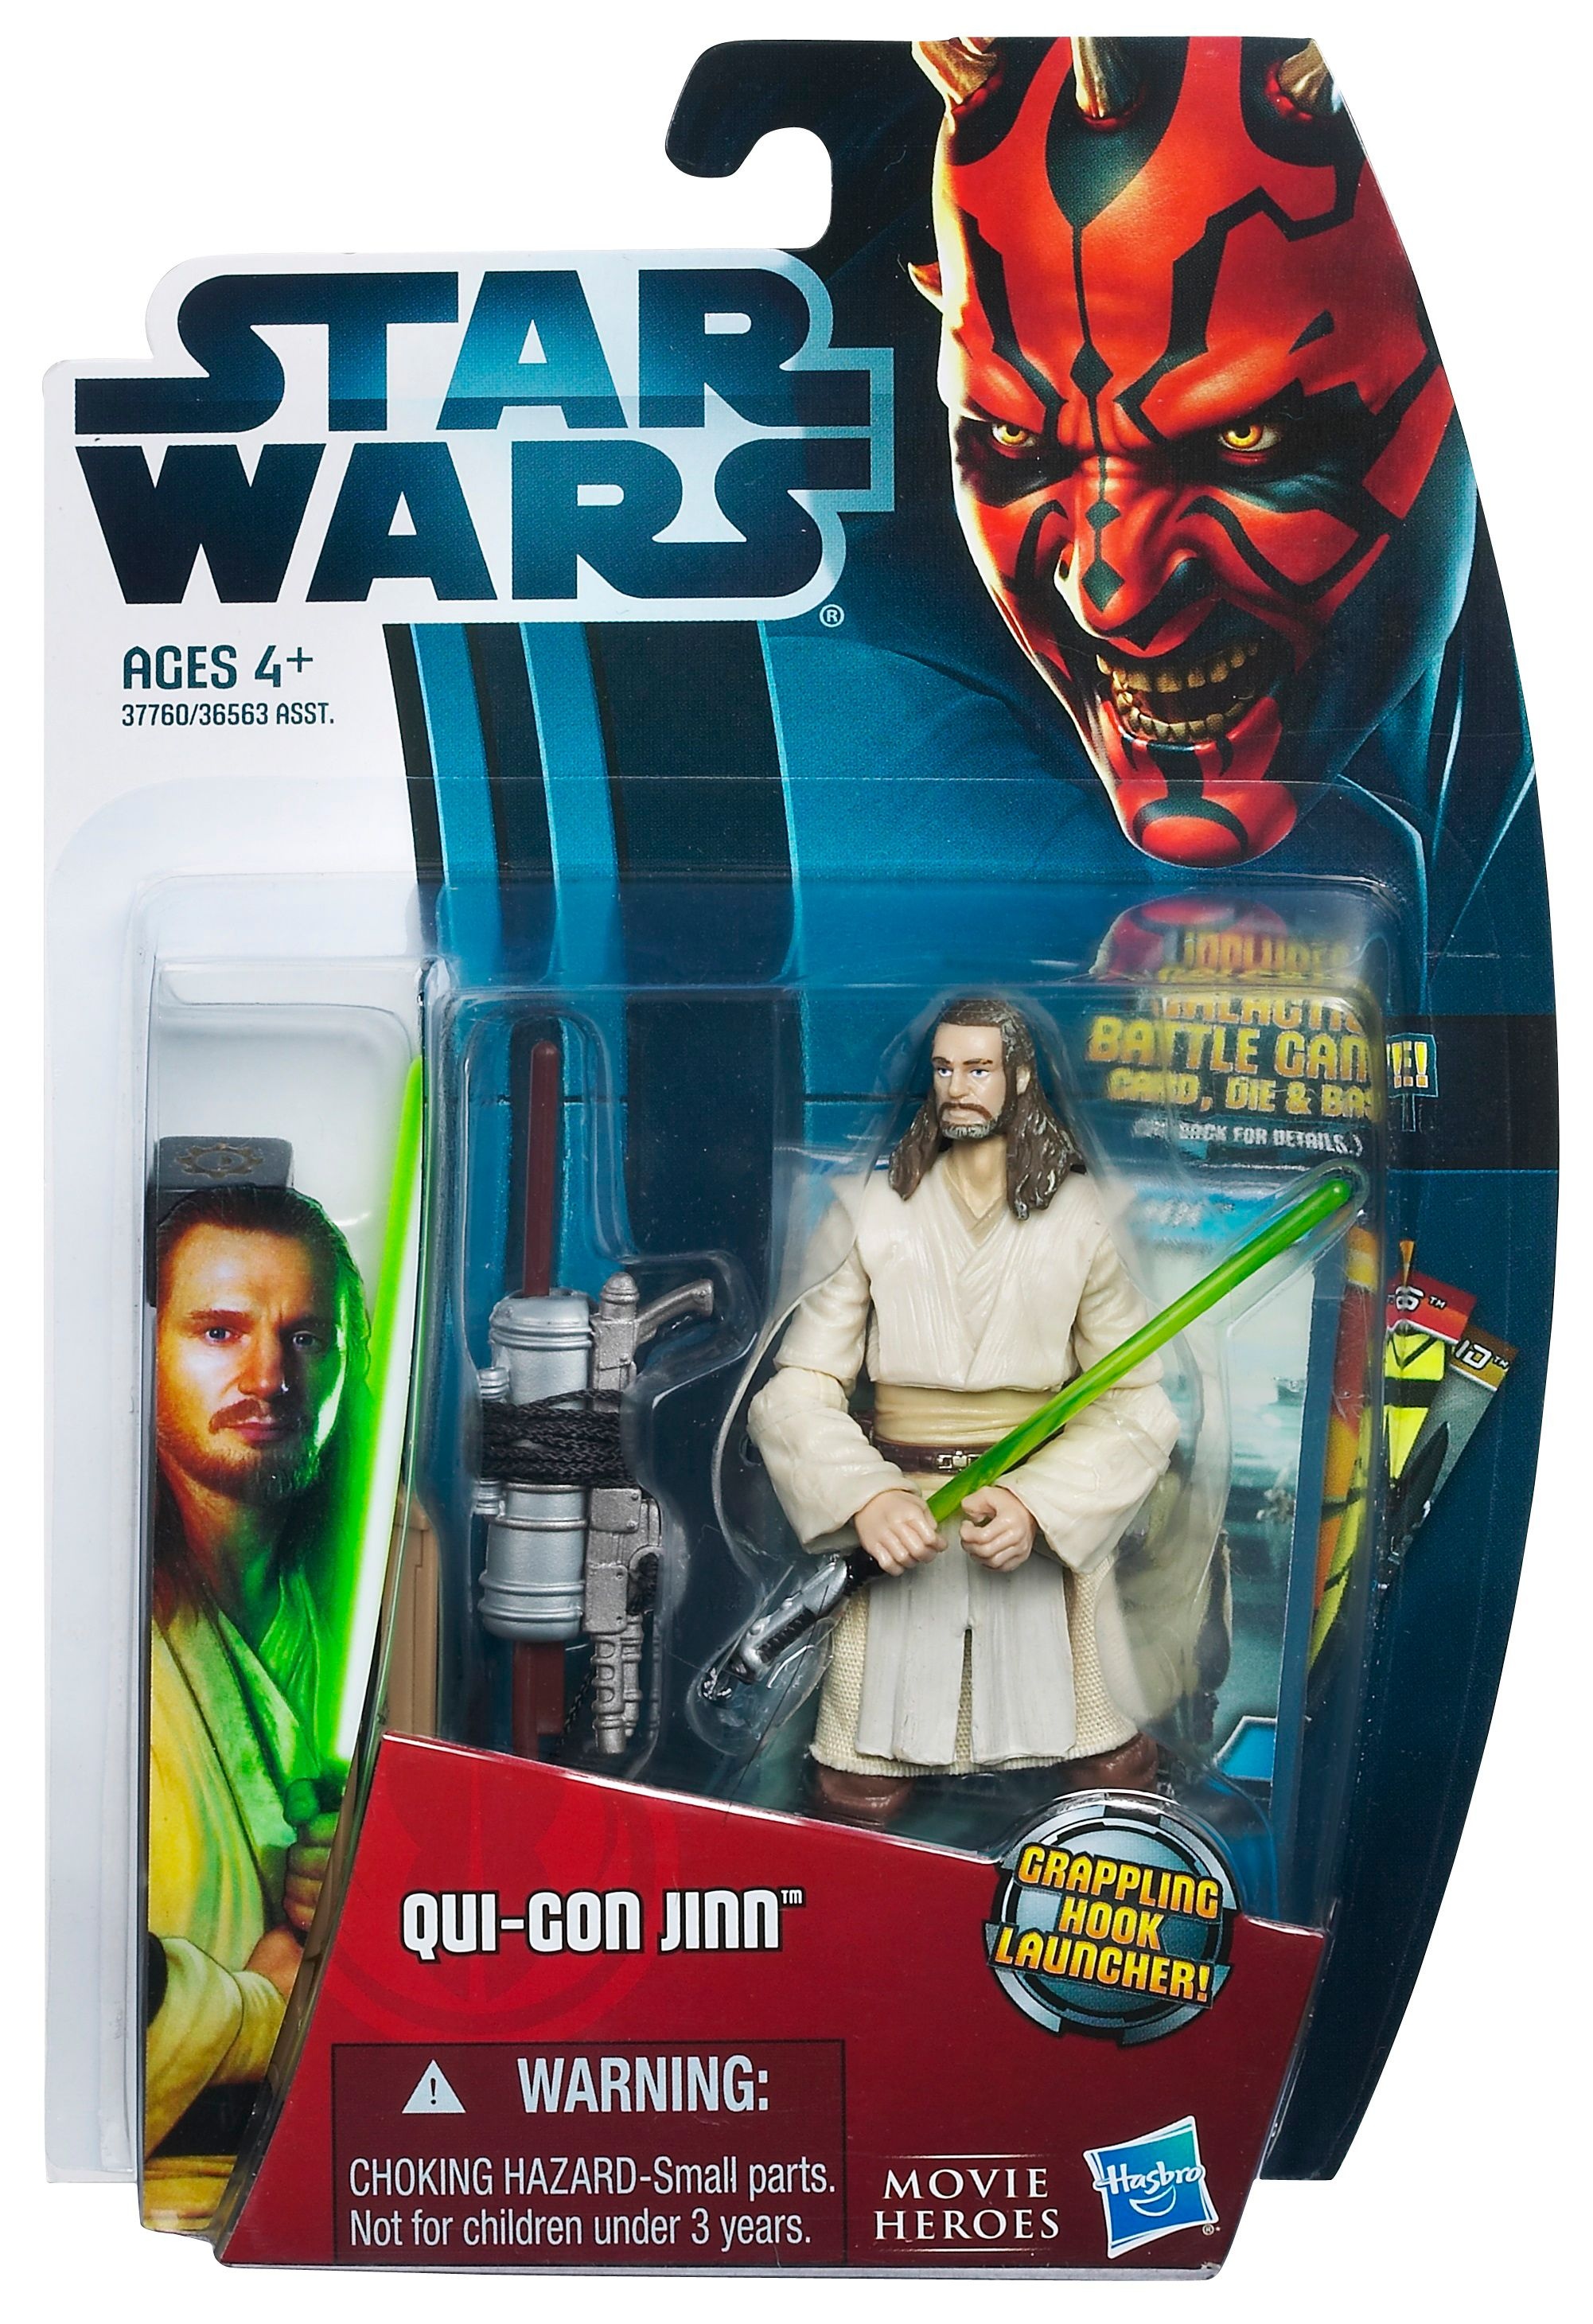 Star Wars Qui-Gon Jinn Movie Heroes Figure